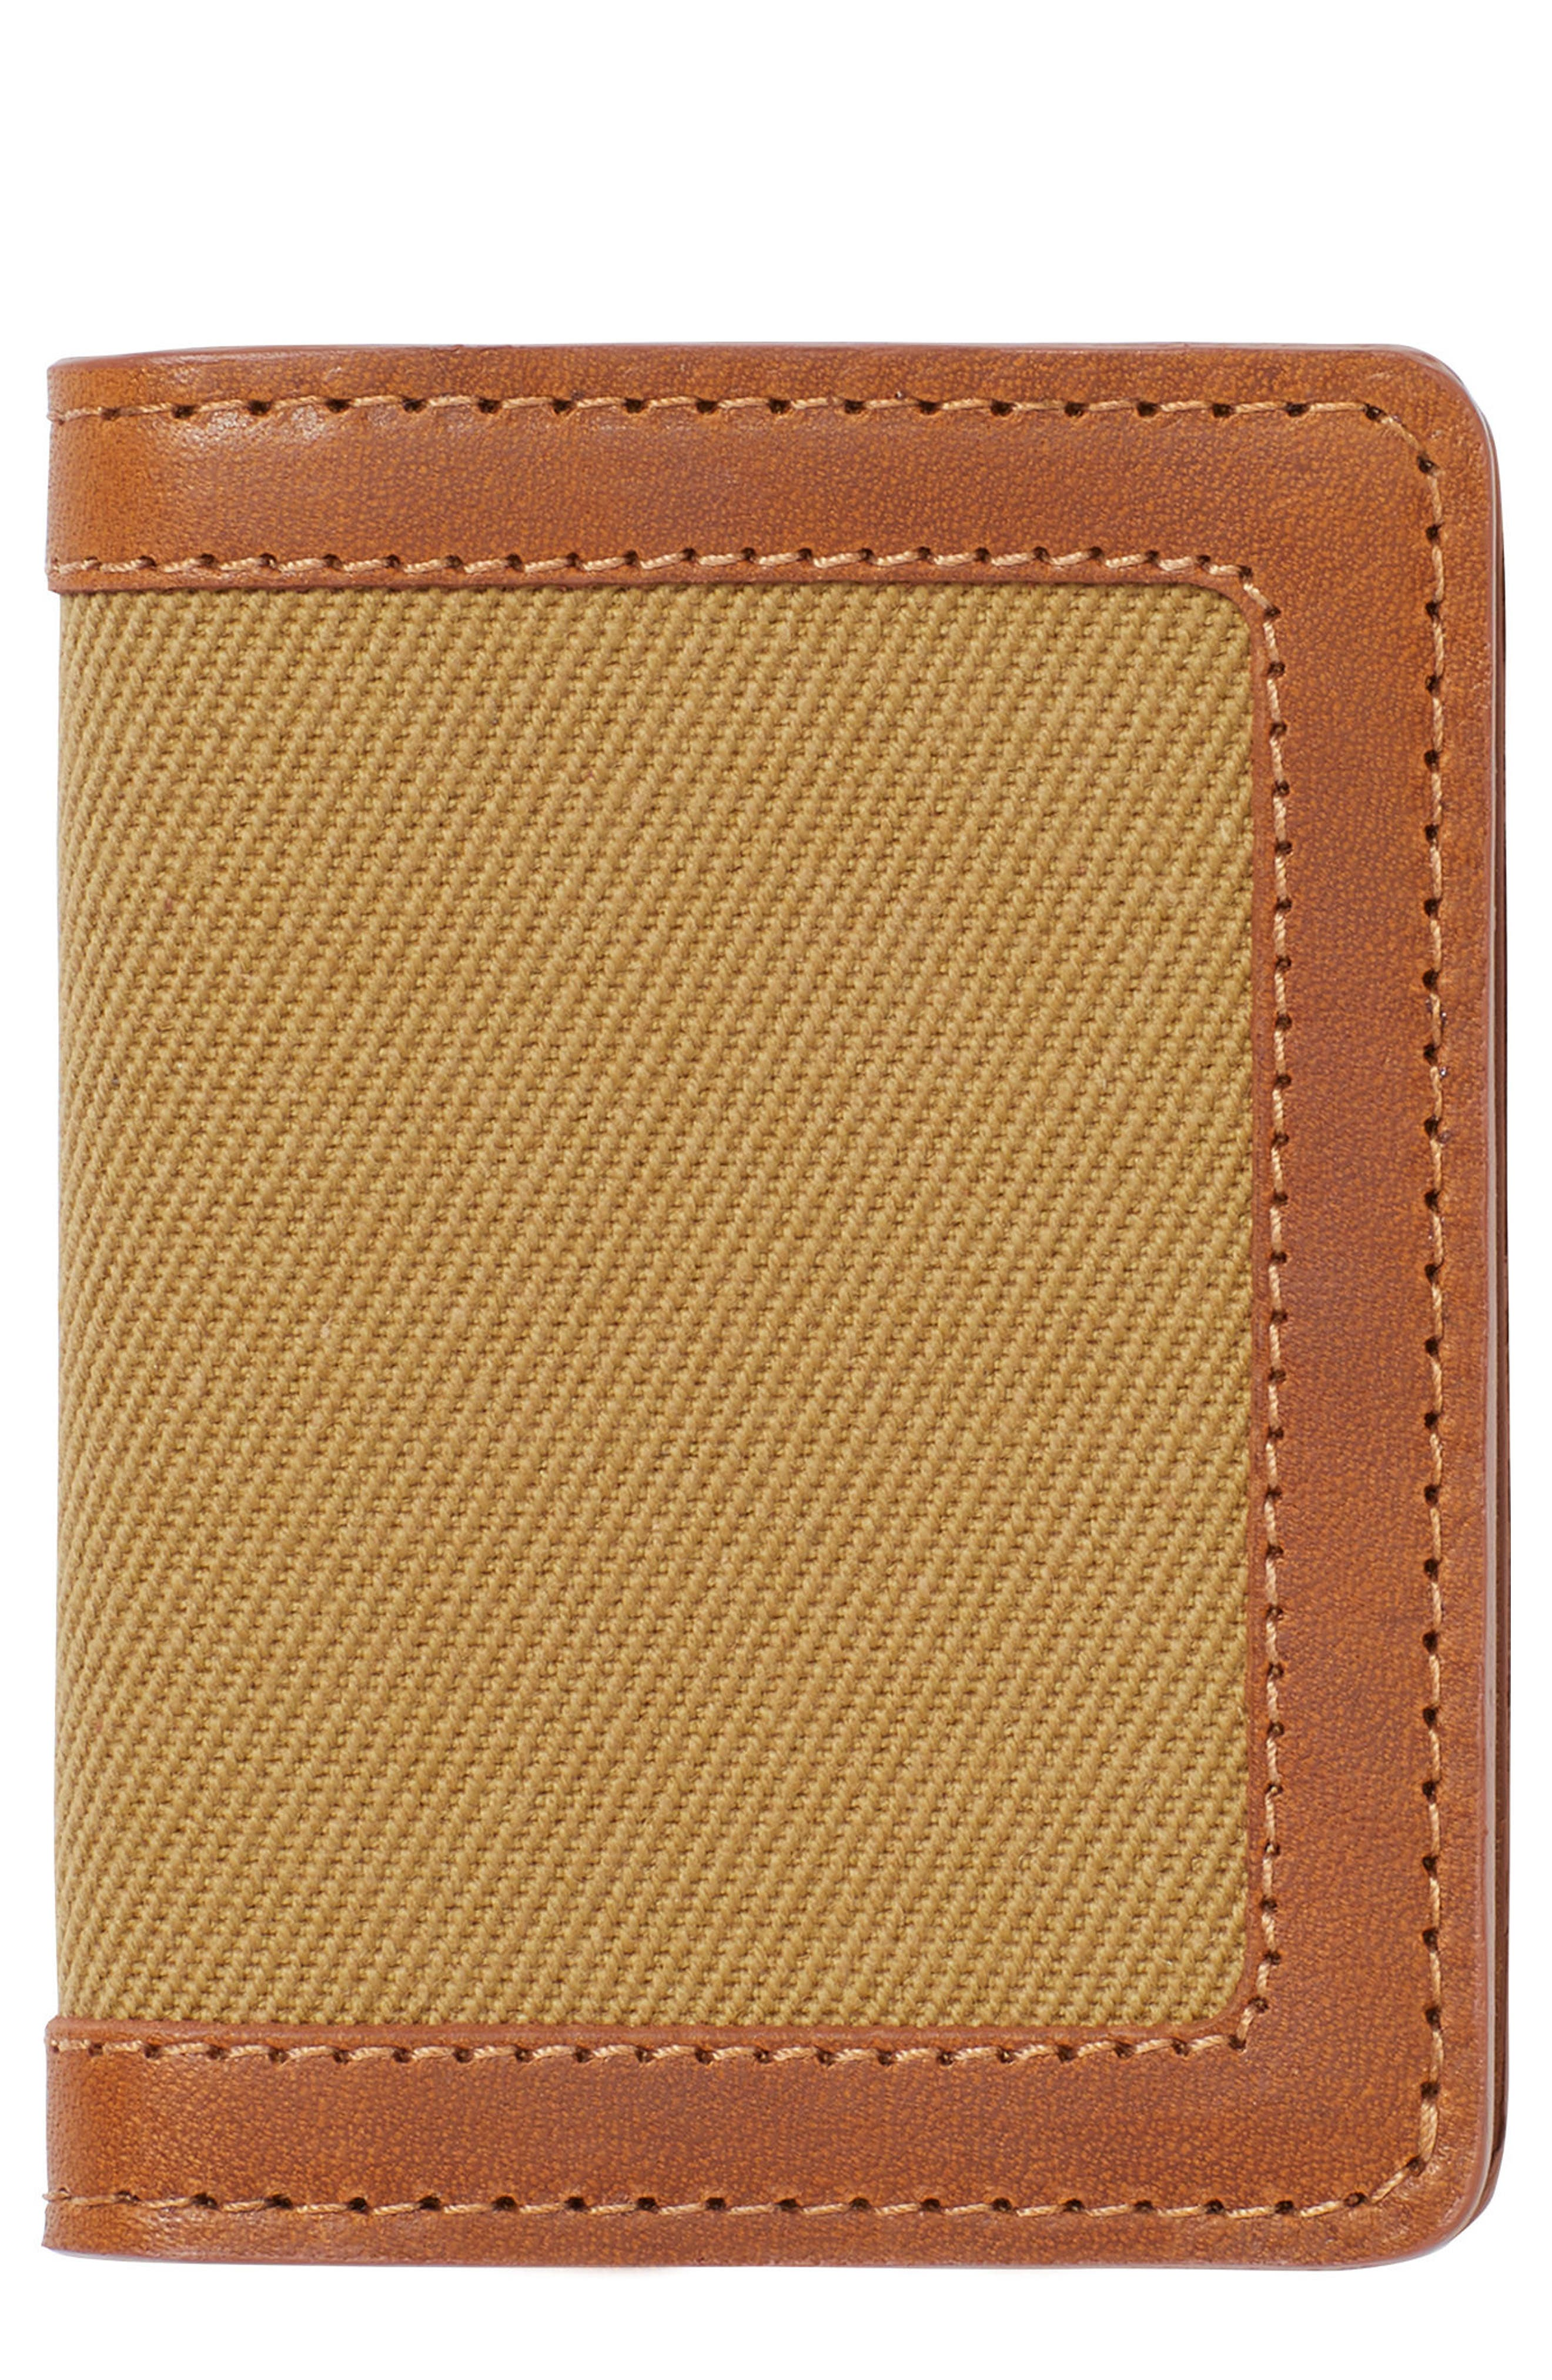 Outfitter Leather & Canvas Card Case,                         Main,                         color, TAN